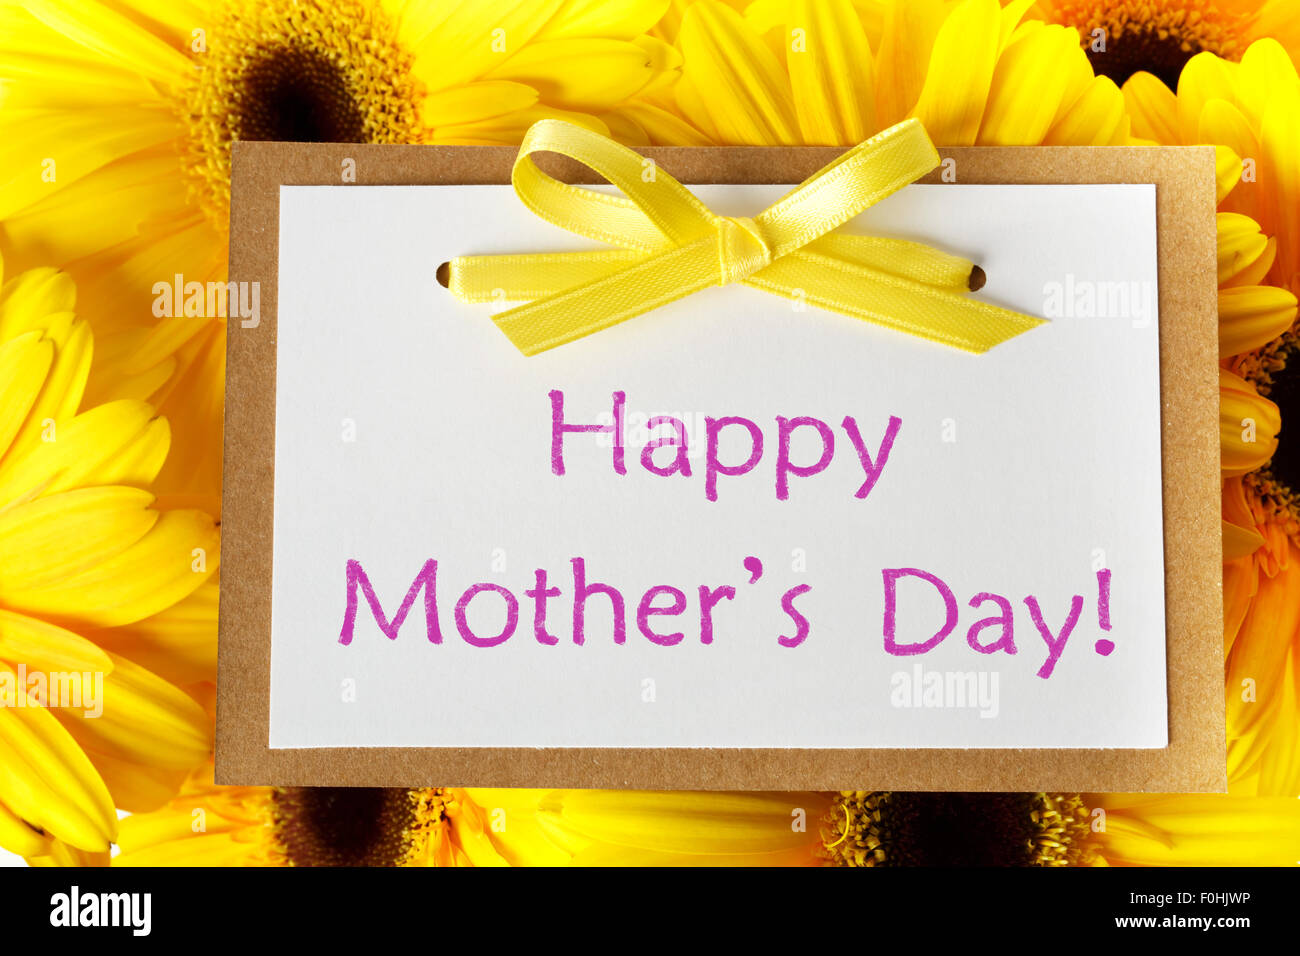 Mothers Day Message Card With Yellow Gerberas Stock Photo 86439858